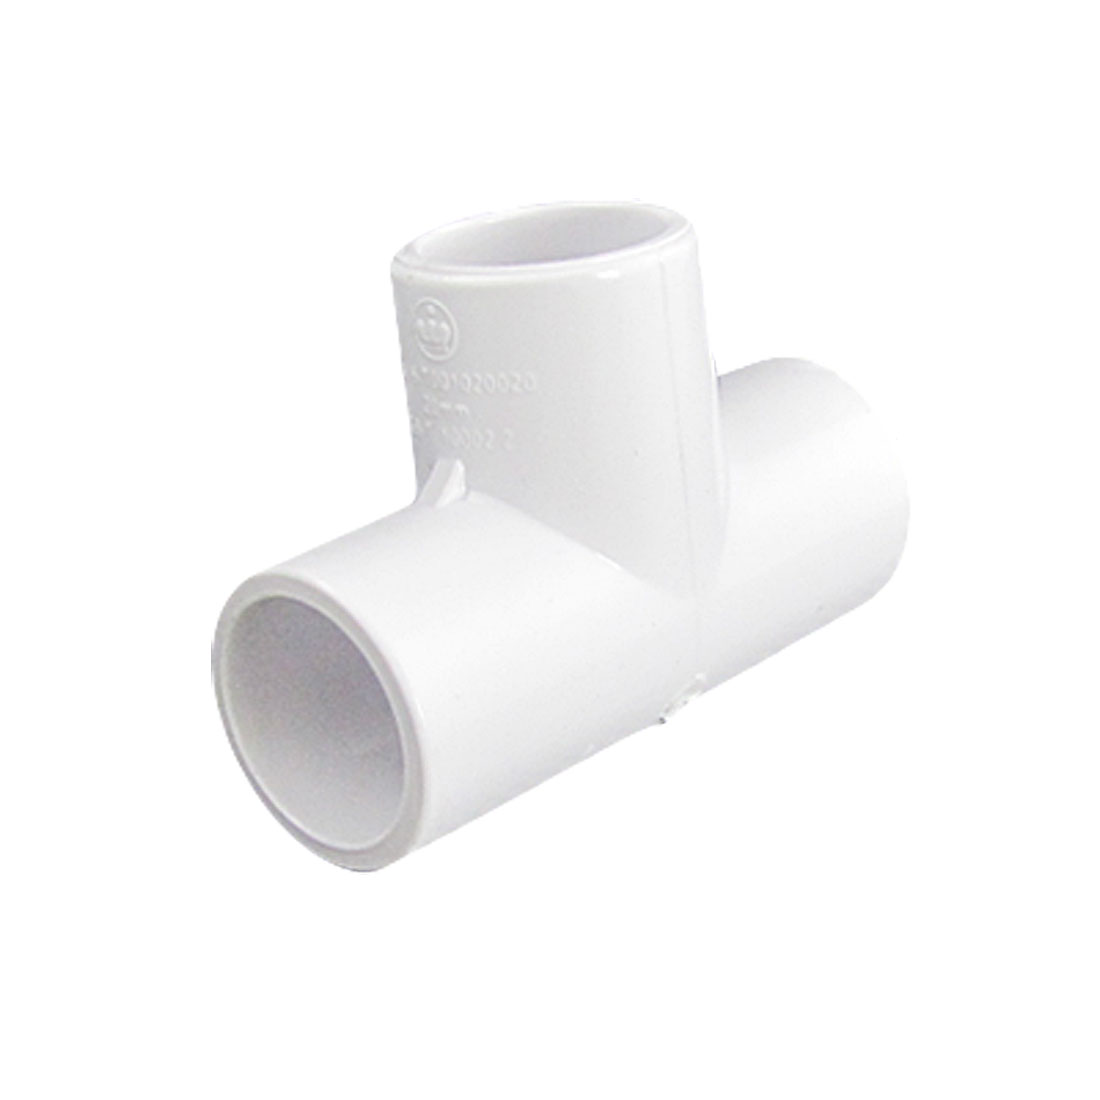 PVC-U 20mm Drinking Water Pipe Tee Adapter Connector